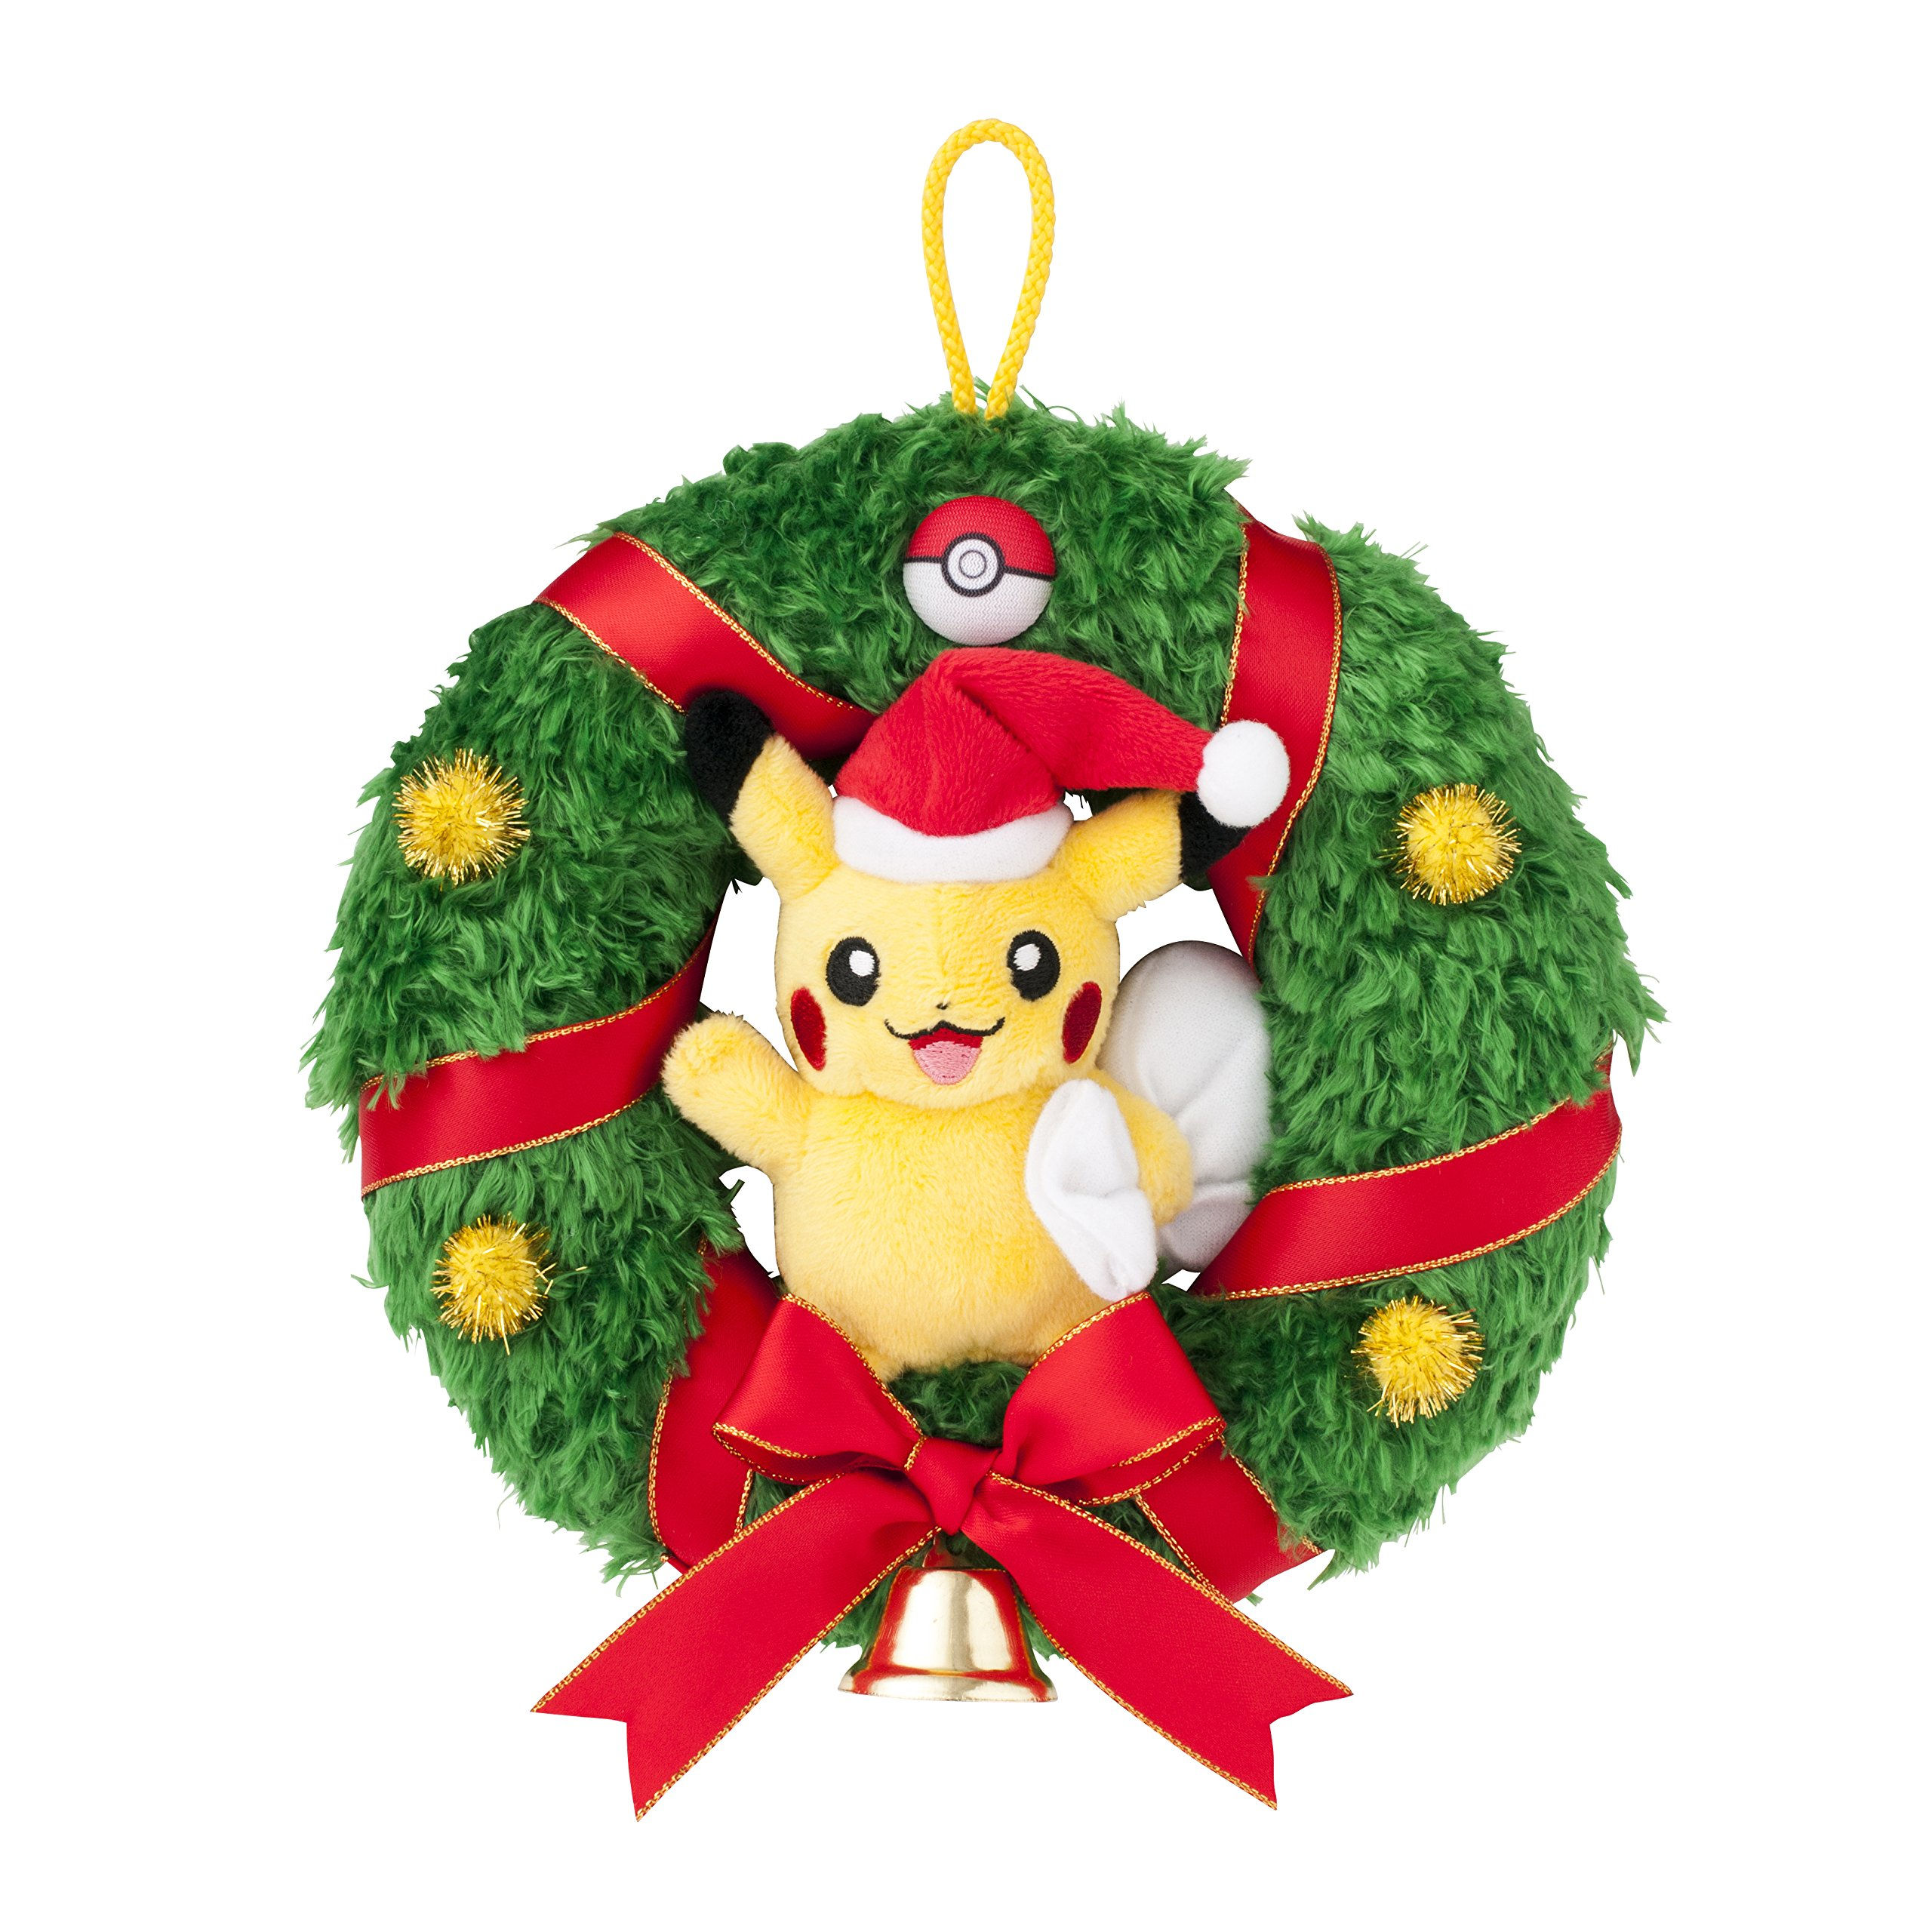 Pikachu Christmas Ornament.Pikachu Plush Christmas Wreath Pokemon Center Original Version